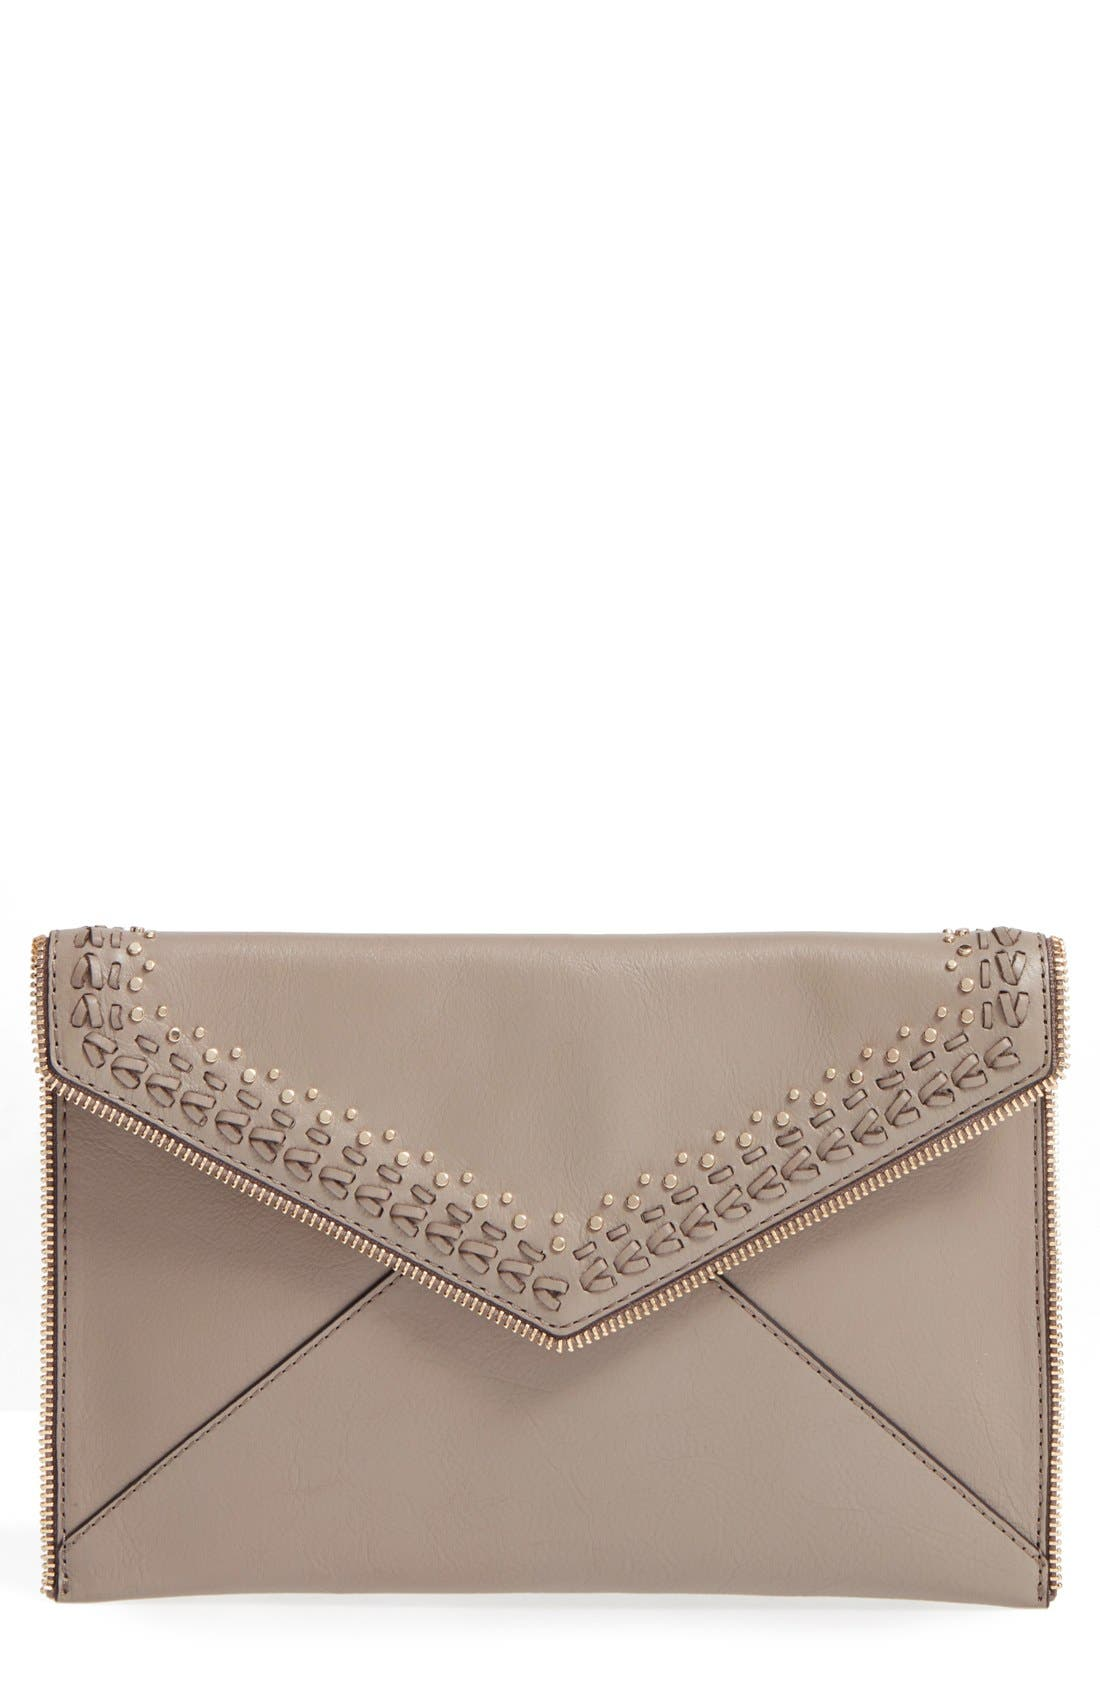 Alternate Image 1 Selected - Rebecca Minkoff 'Whipstitch Leo' Leather Clutch